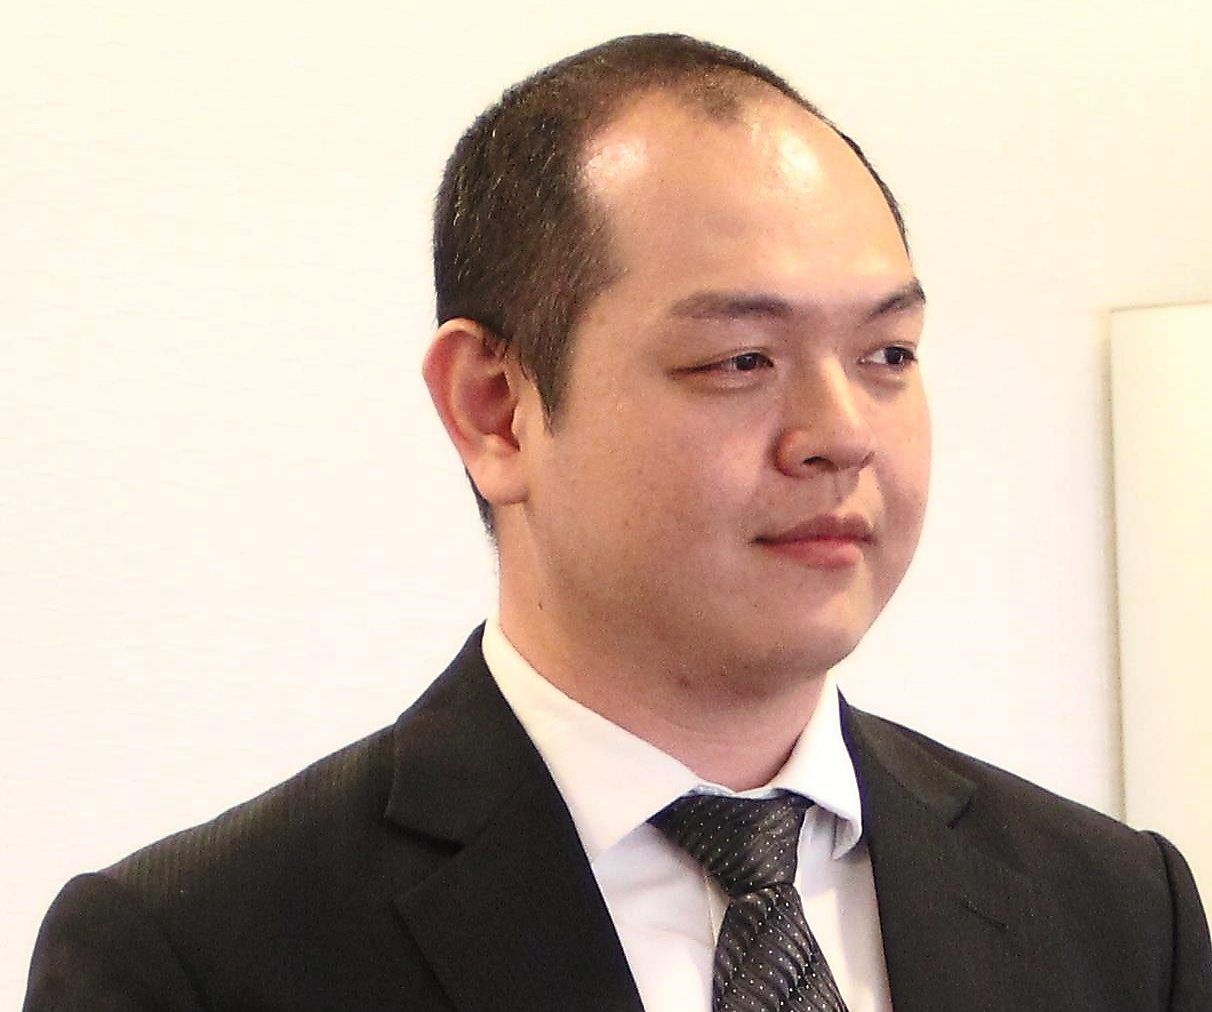 A free antivirus with basic features is good enough as long as the user practises good security habits, says Fong. — LGMS